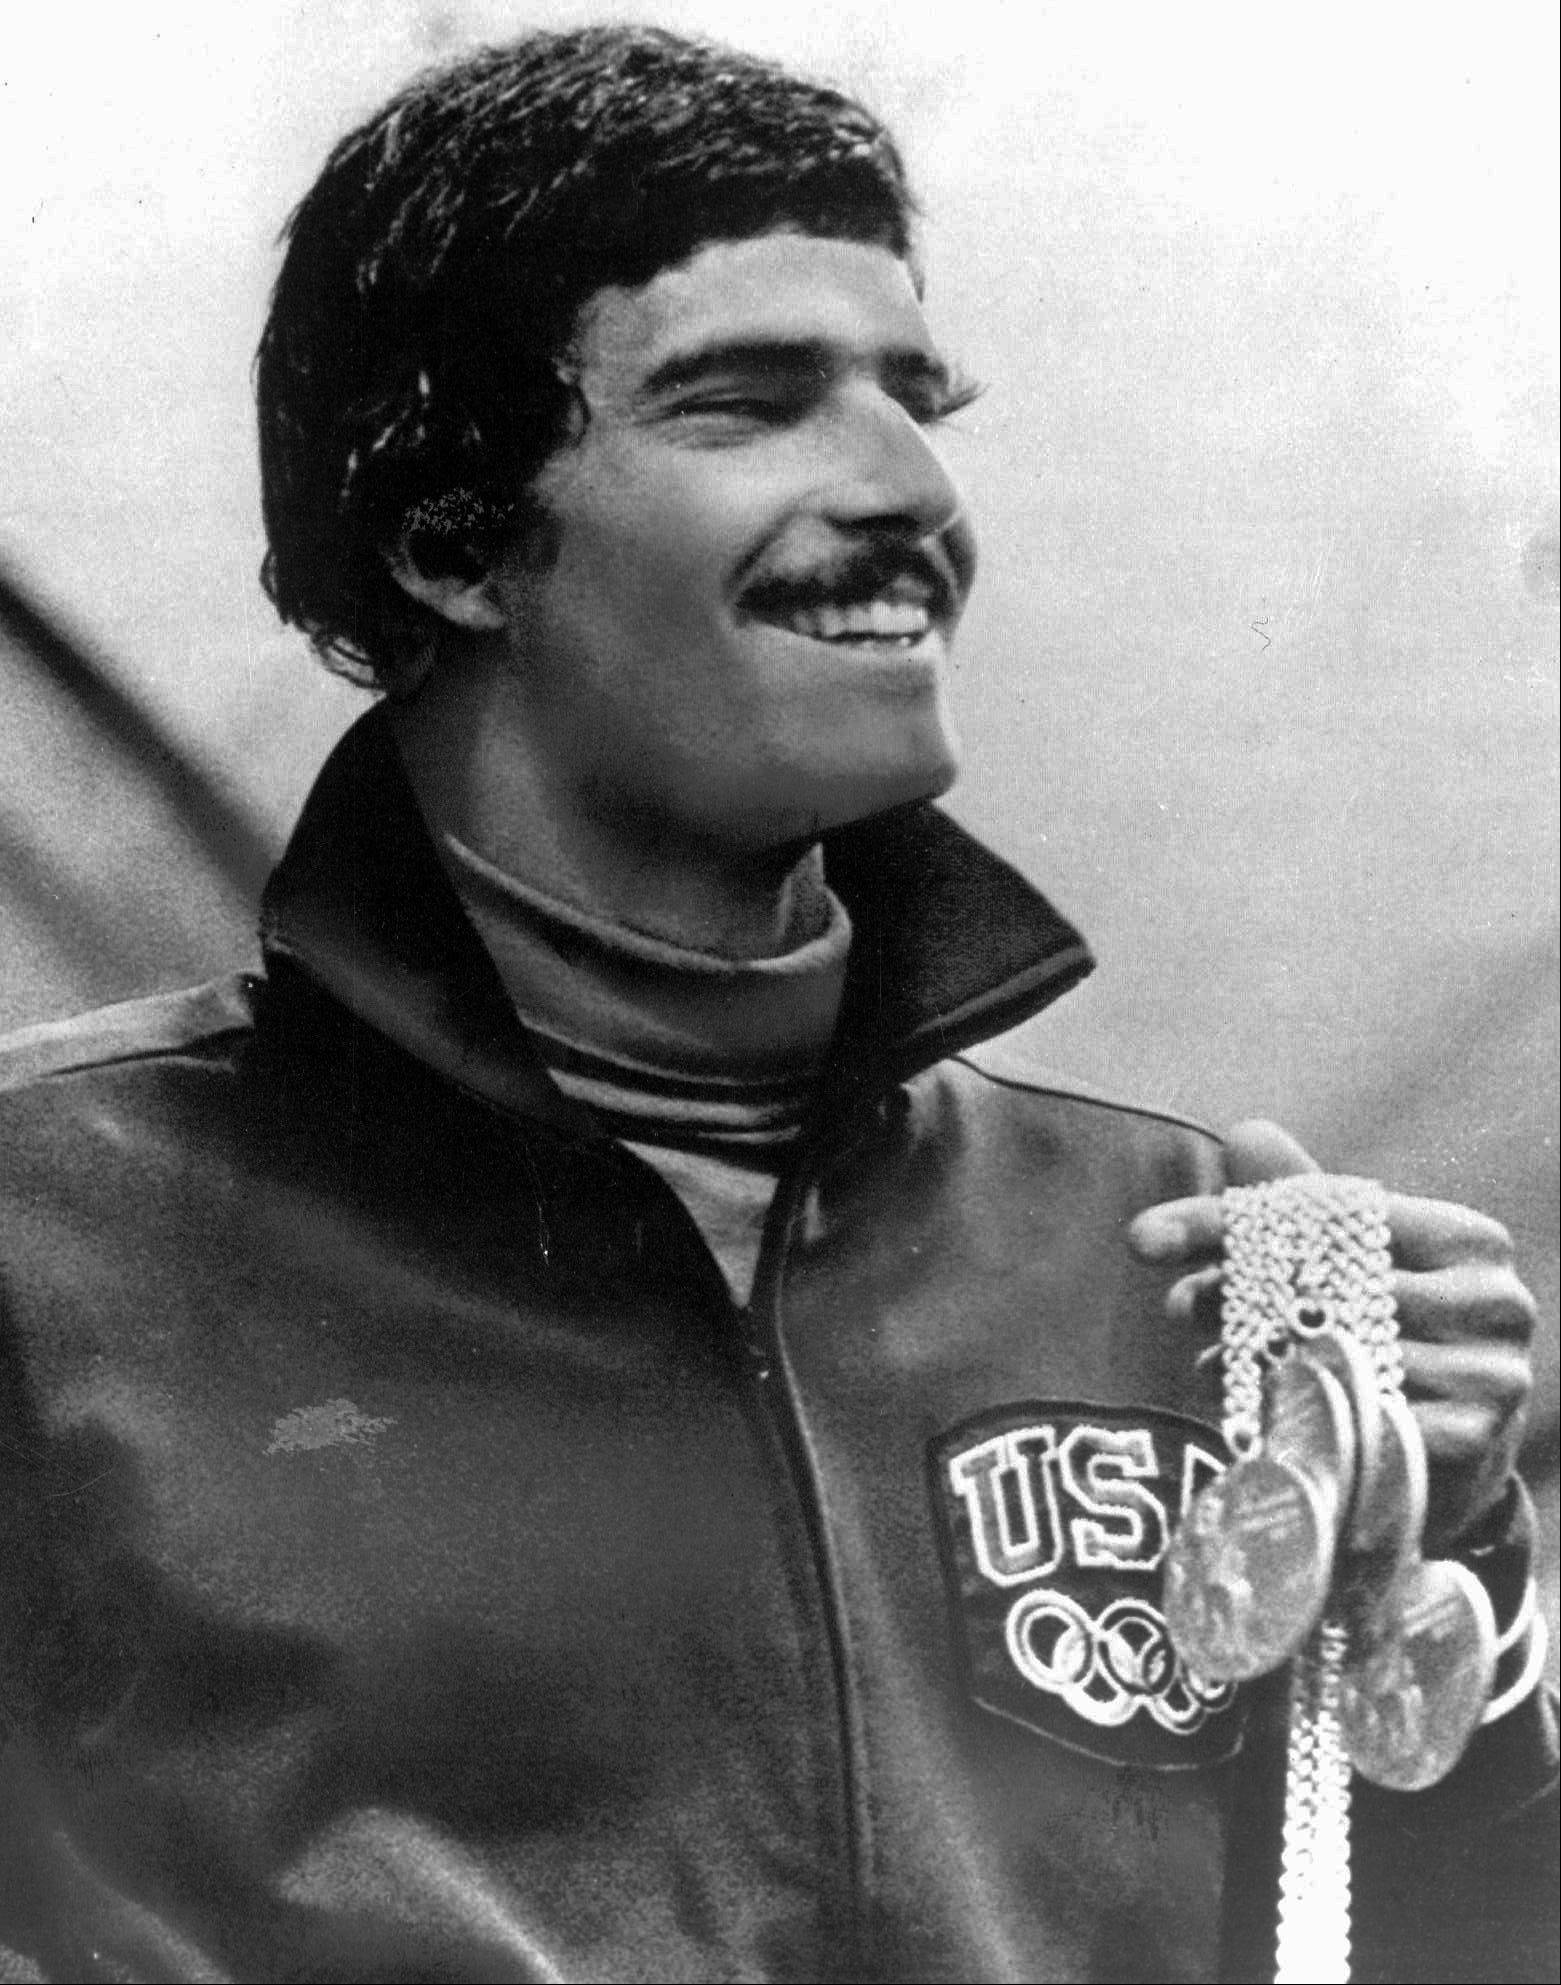 In this Aug. 31, 1972, file photo, American swimmer Mark Spitz holds five of the seven gold medals he won at the Olympics in Munich, Germany. In winning the 200-meter freestyle, Michael Phelps etched his name alongside the winningest Olympians with the ninth gold of an already brilliant career that shows no signs of slowing down.